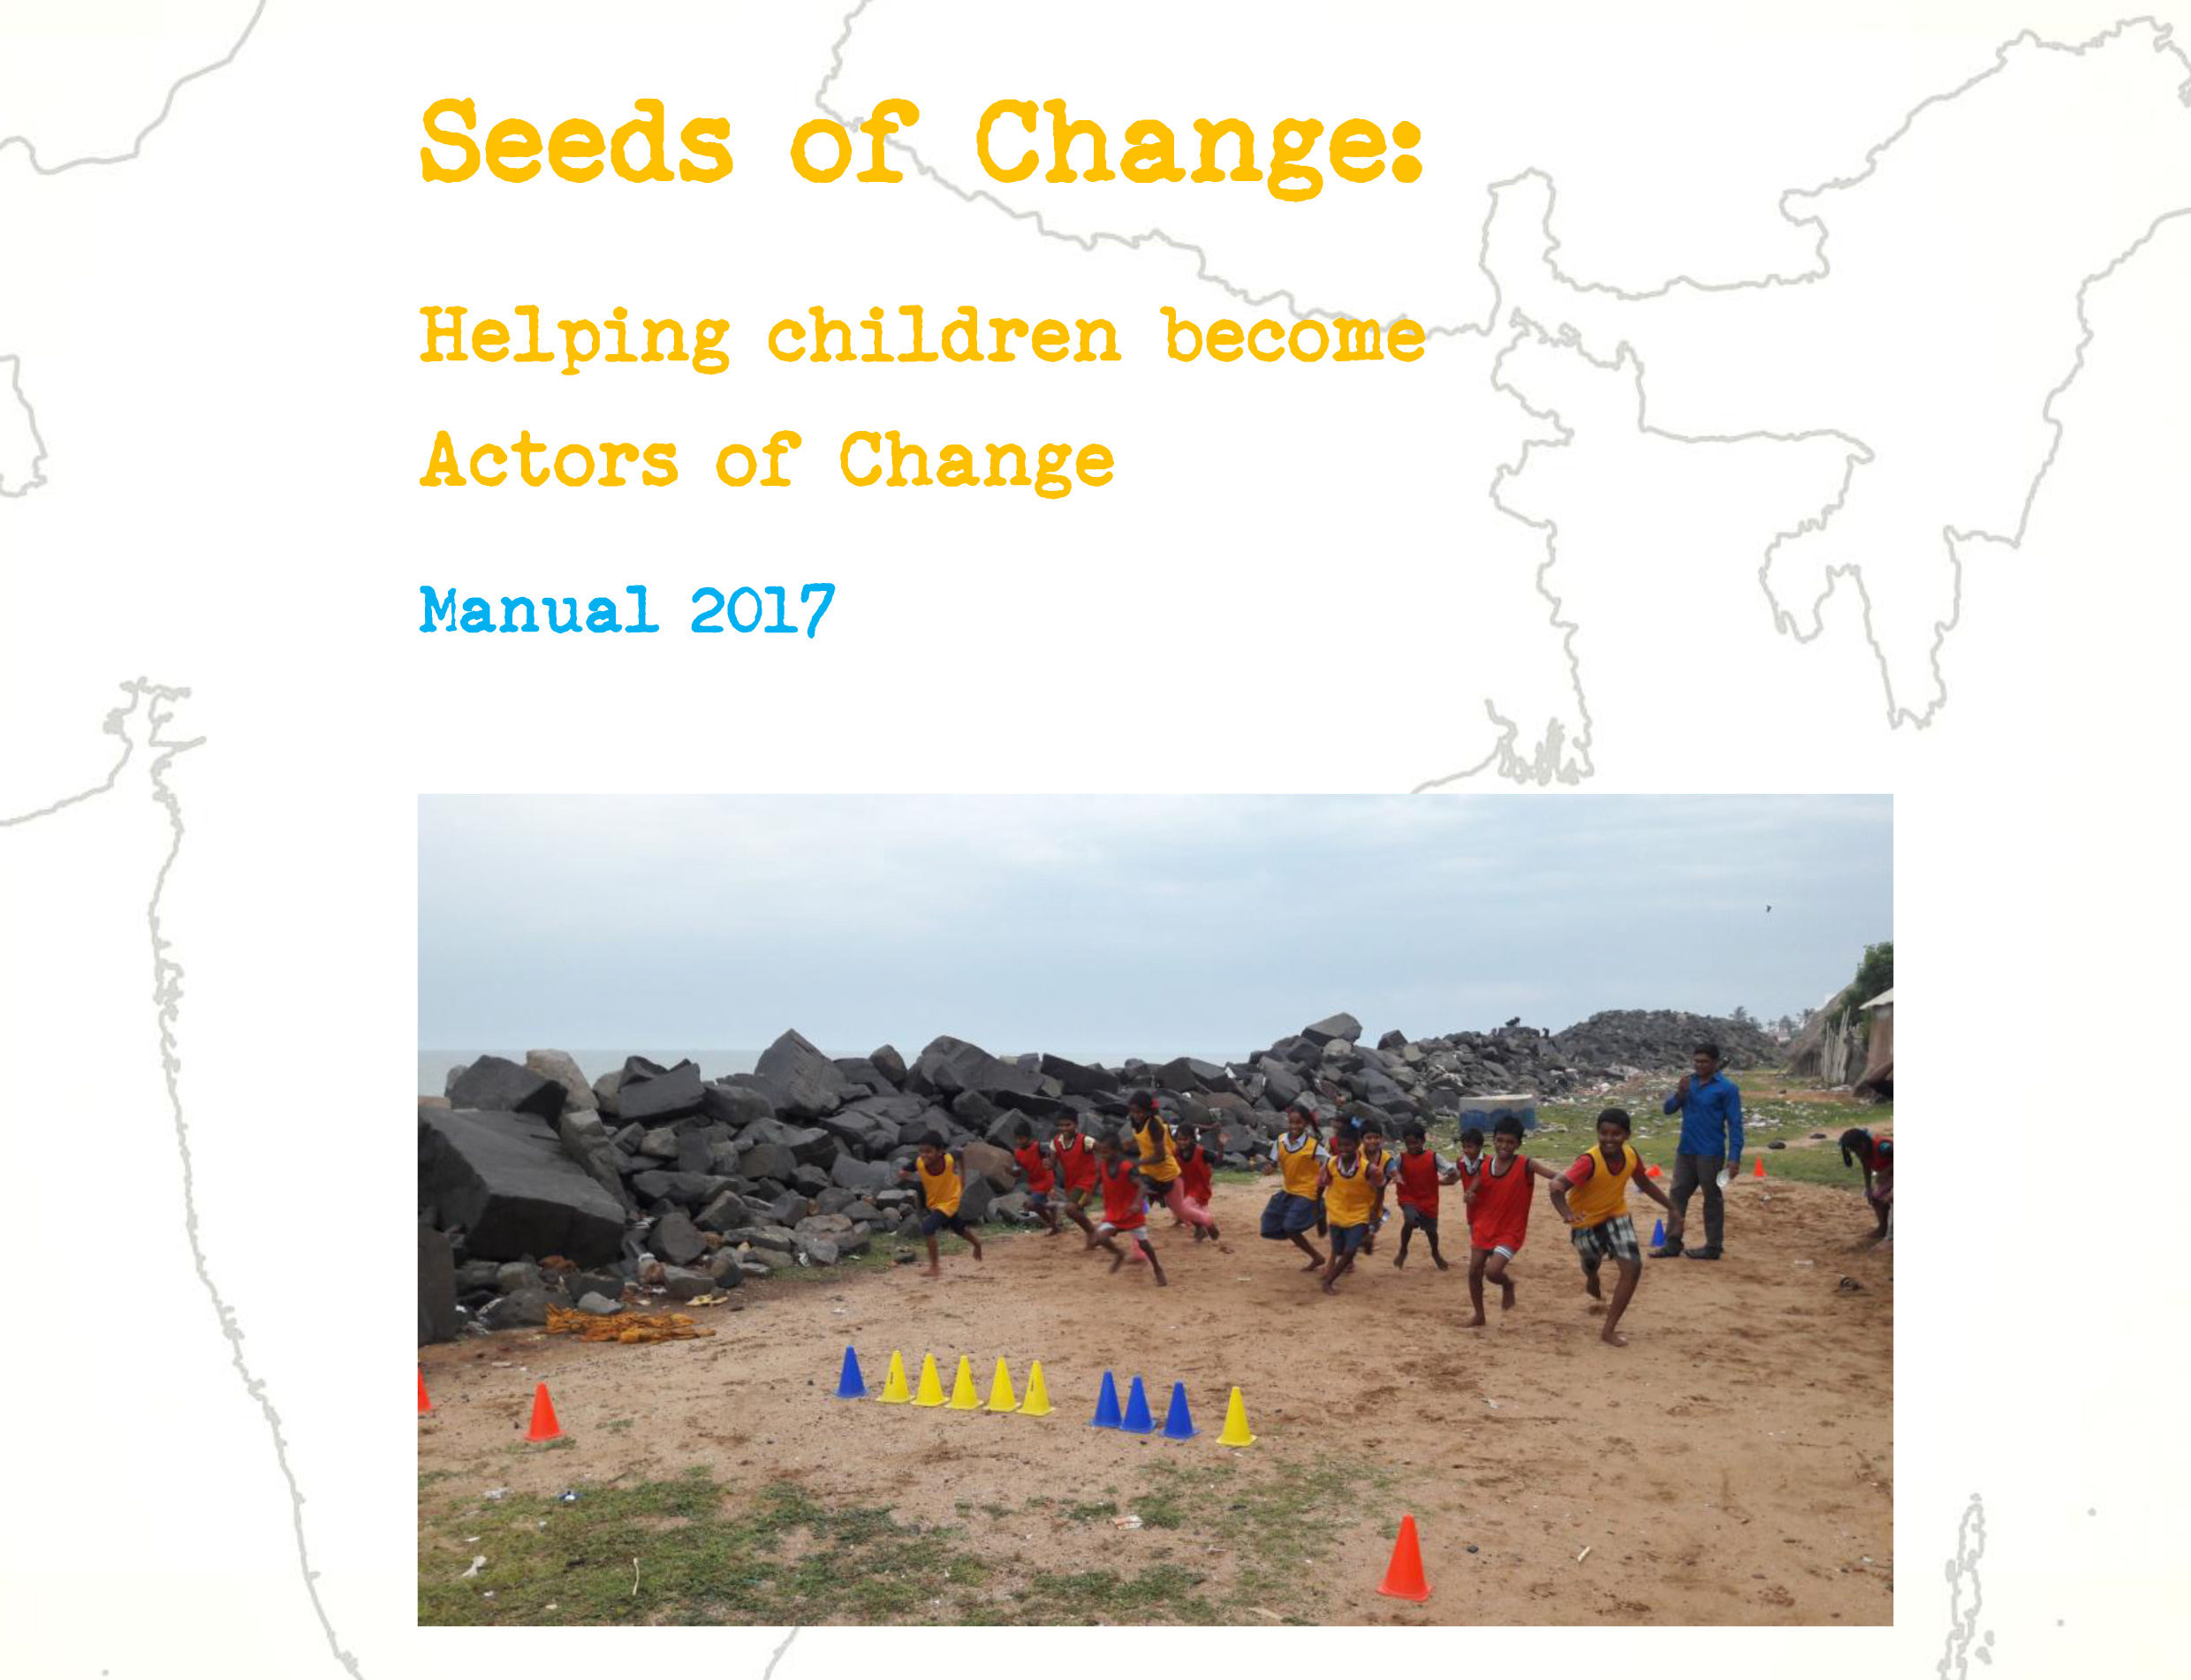 Chemins d'Enfance Seeds of Change